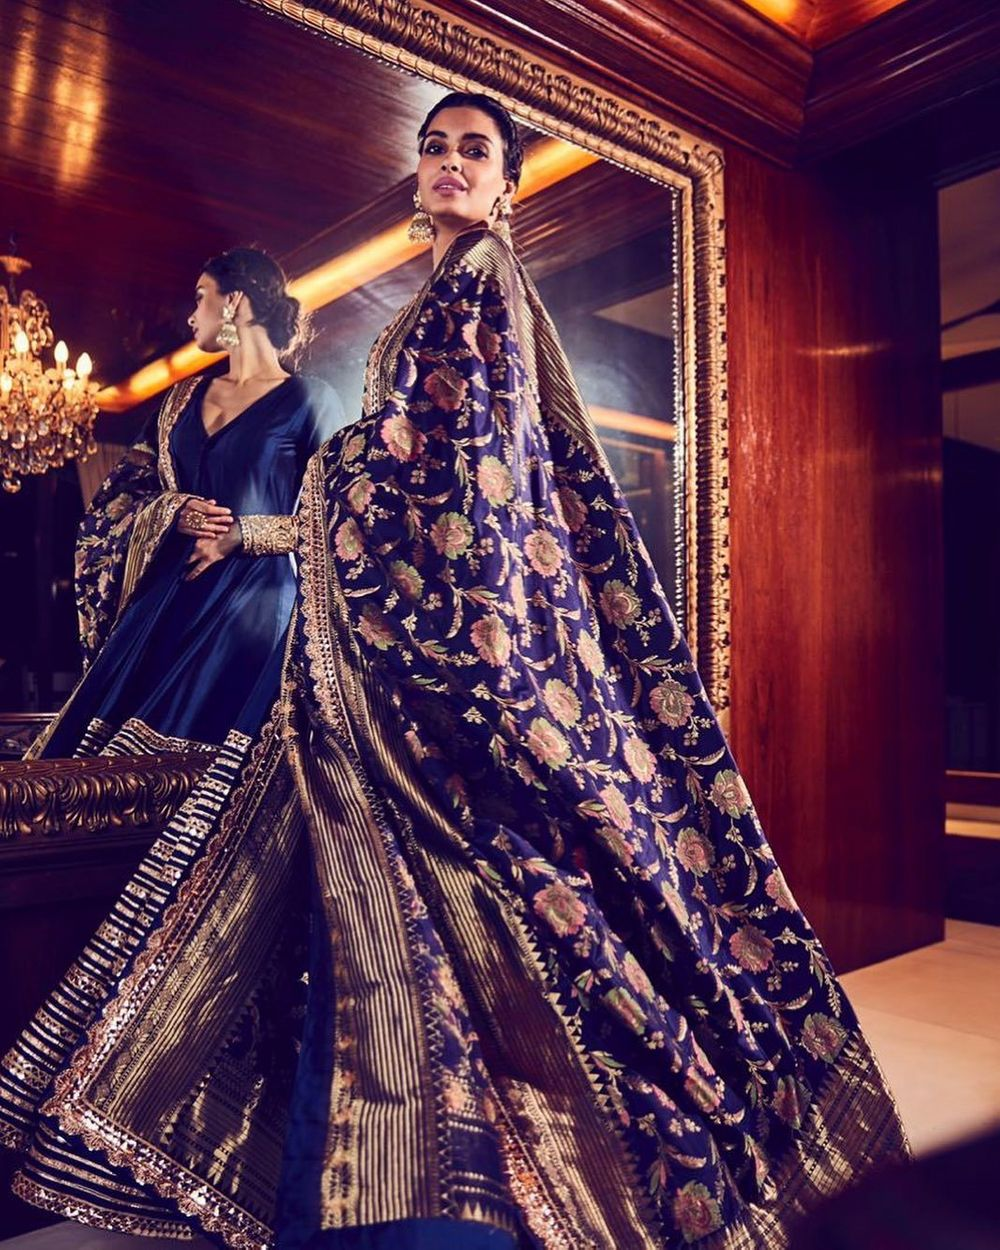 Photo From October 2019 - By Manish Malhotra